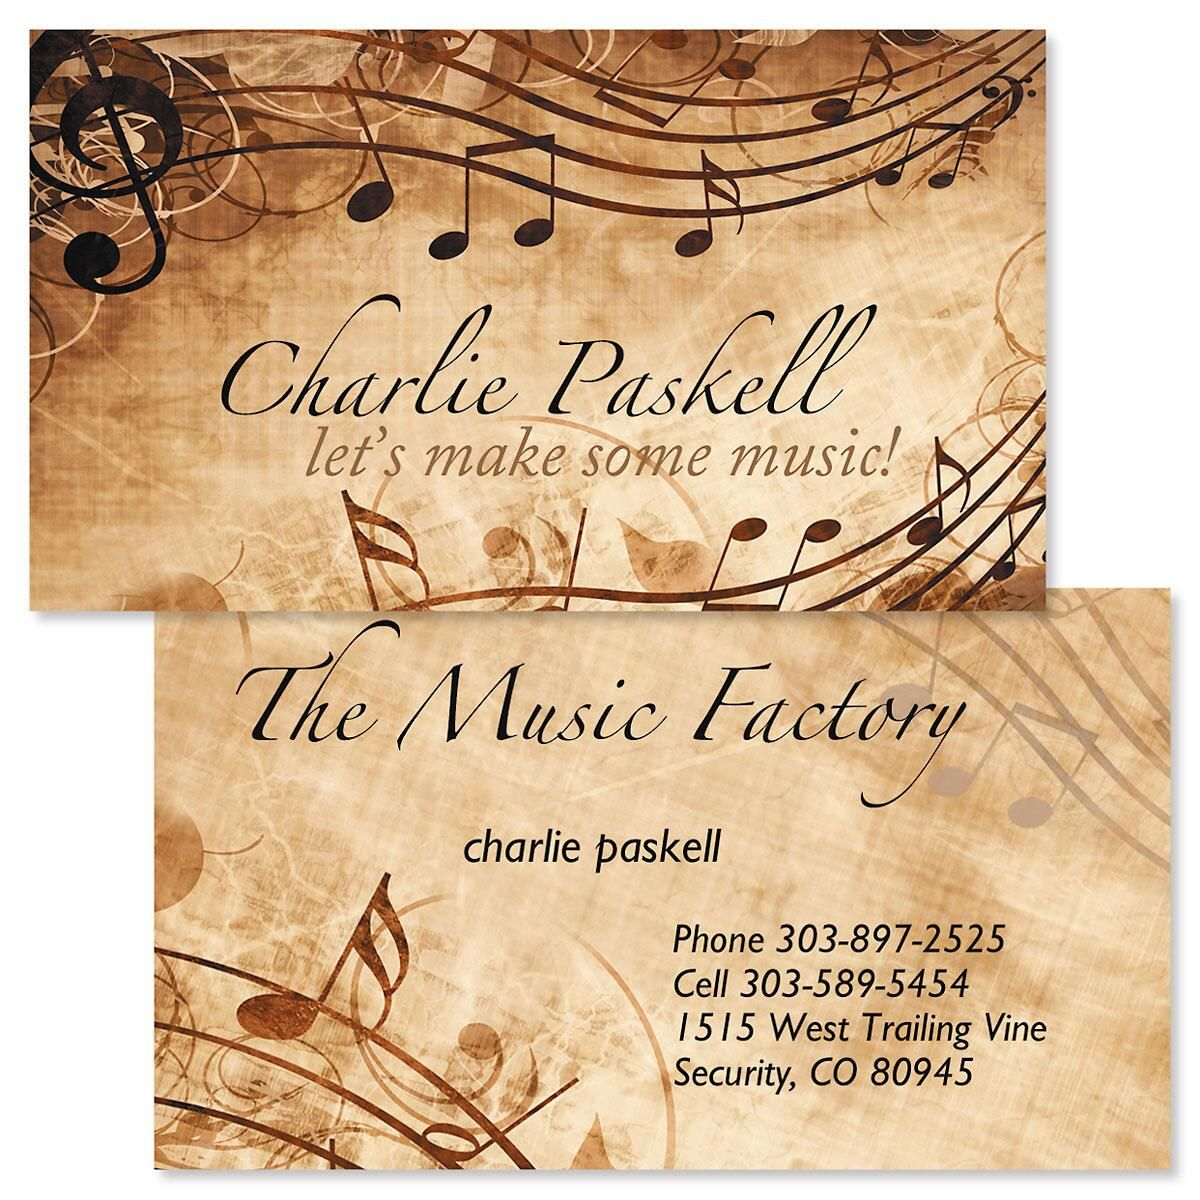 Sheet Music Double-Sided Business Cards